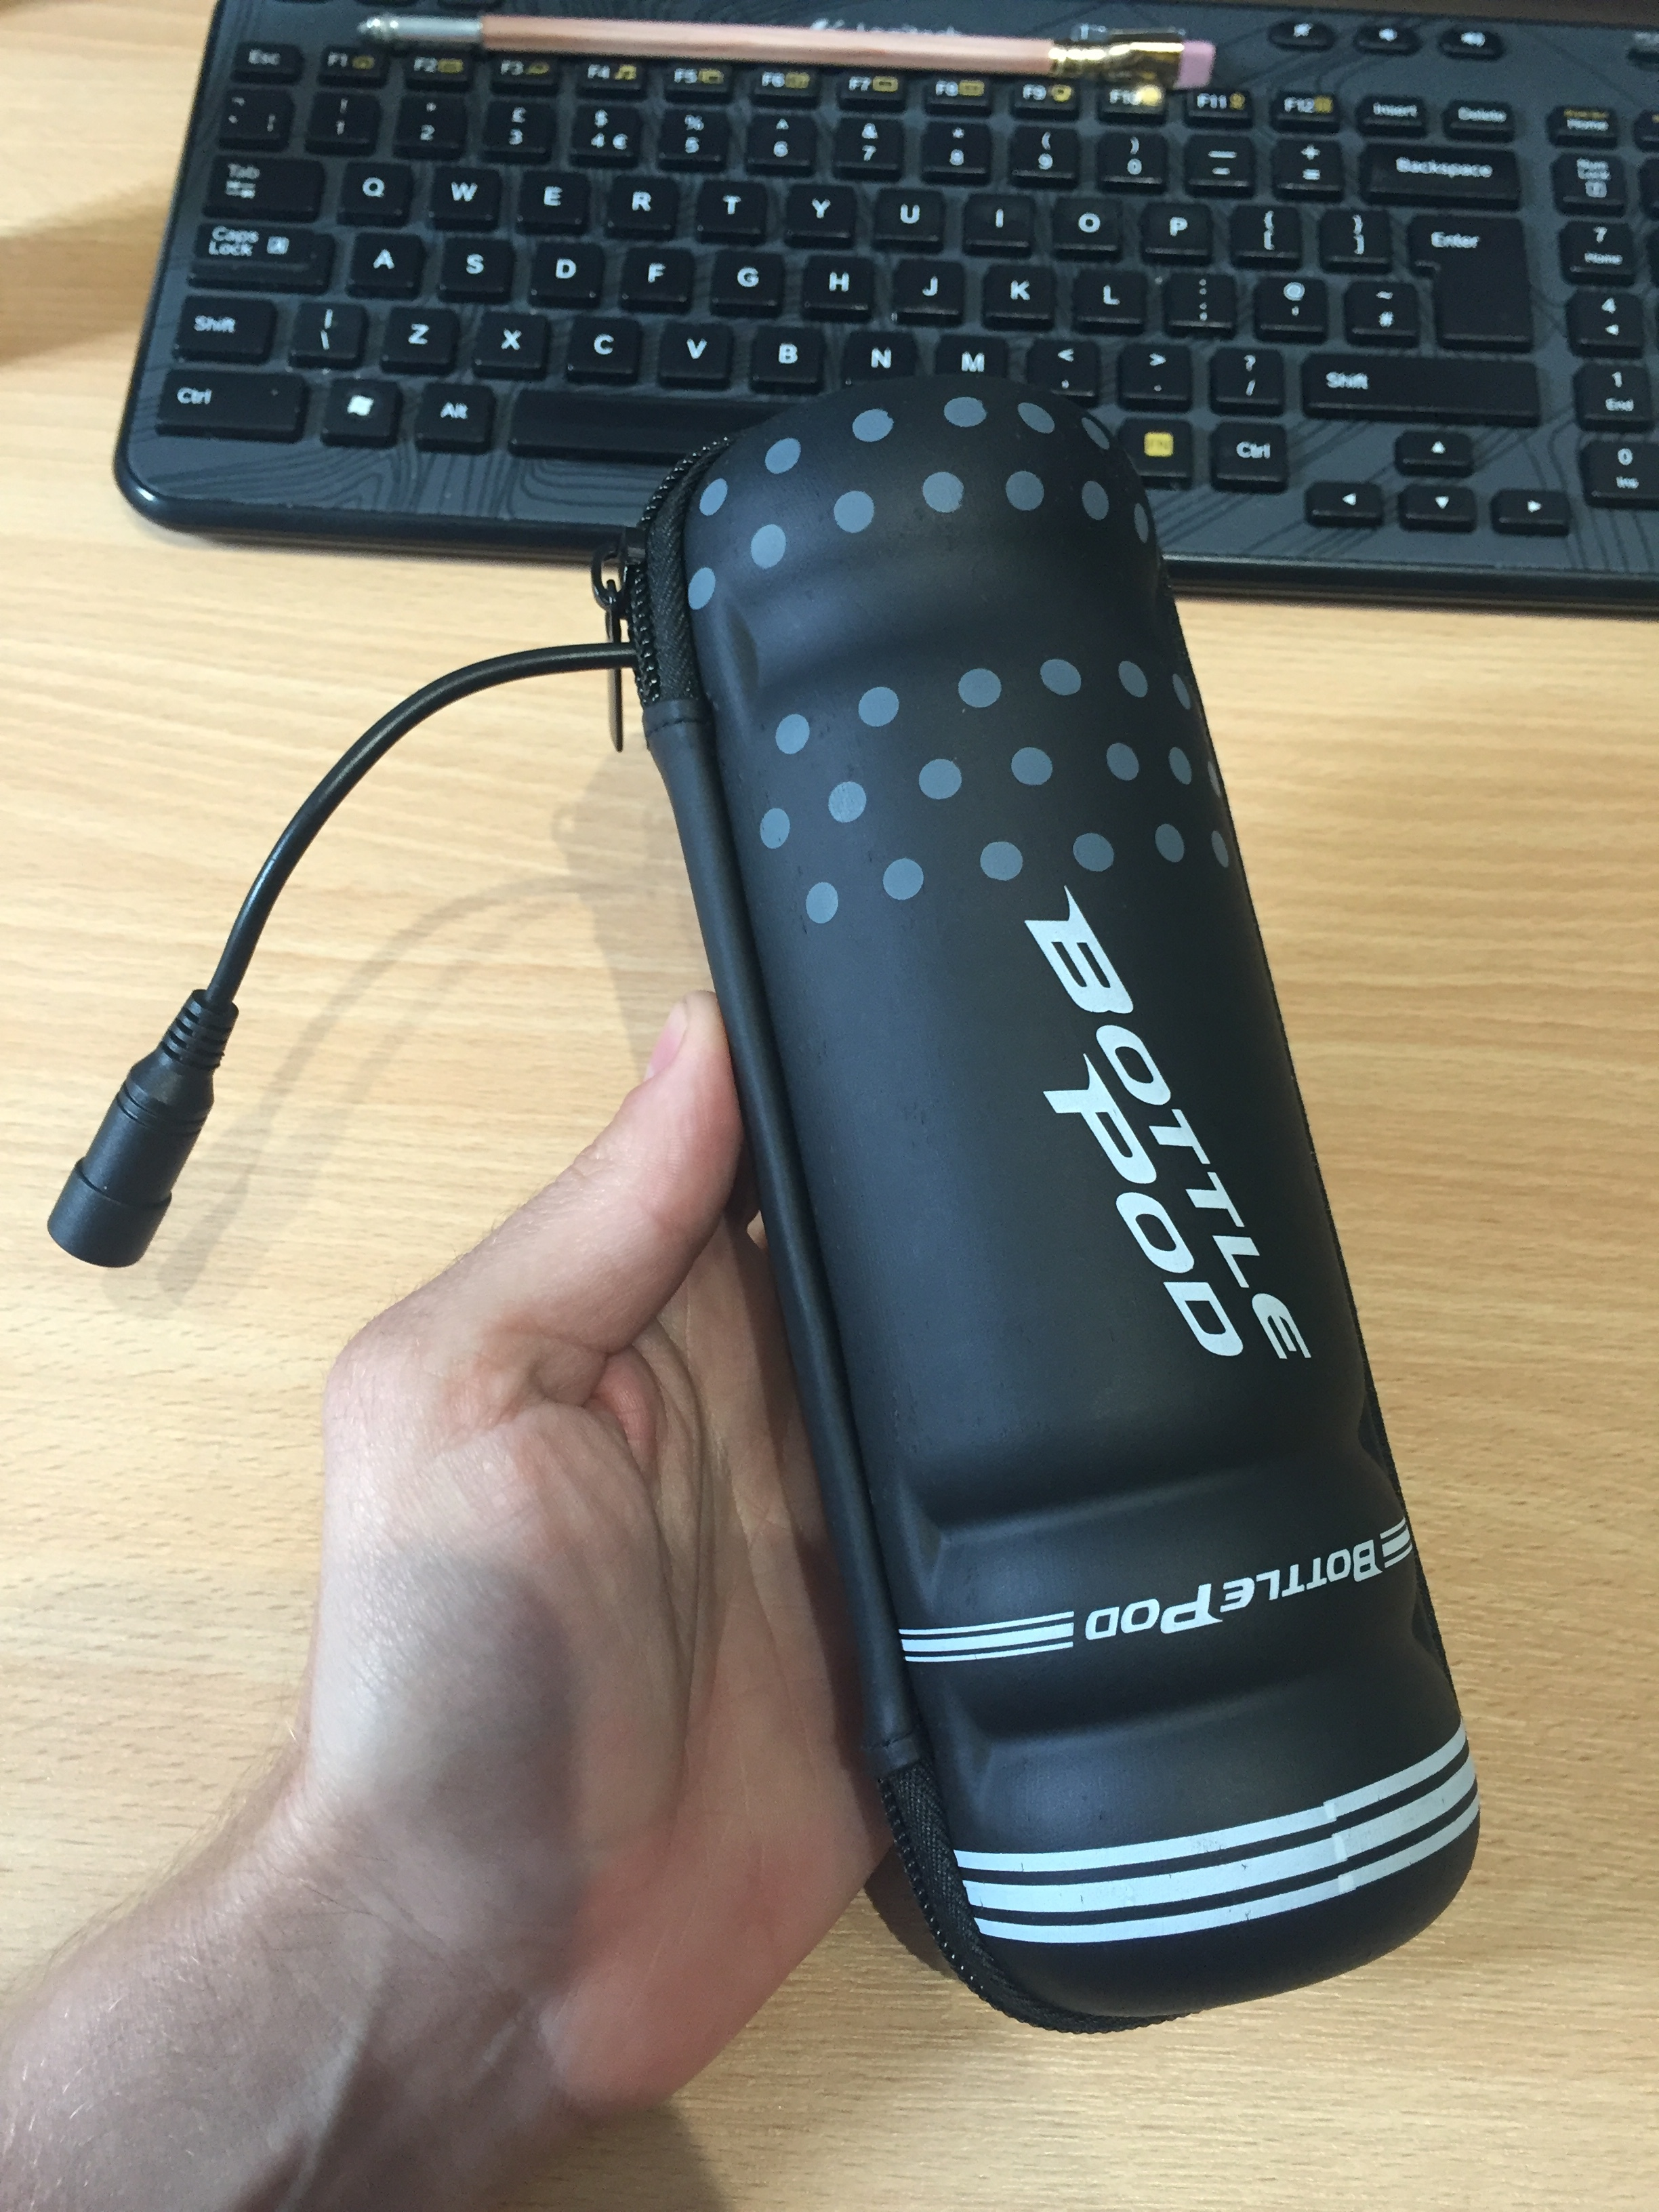 Bottle Pod holding a light battery